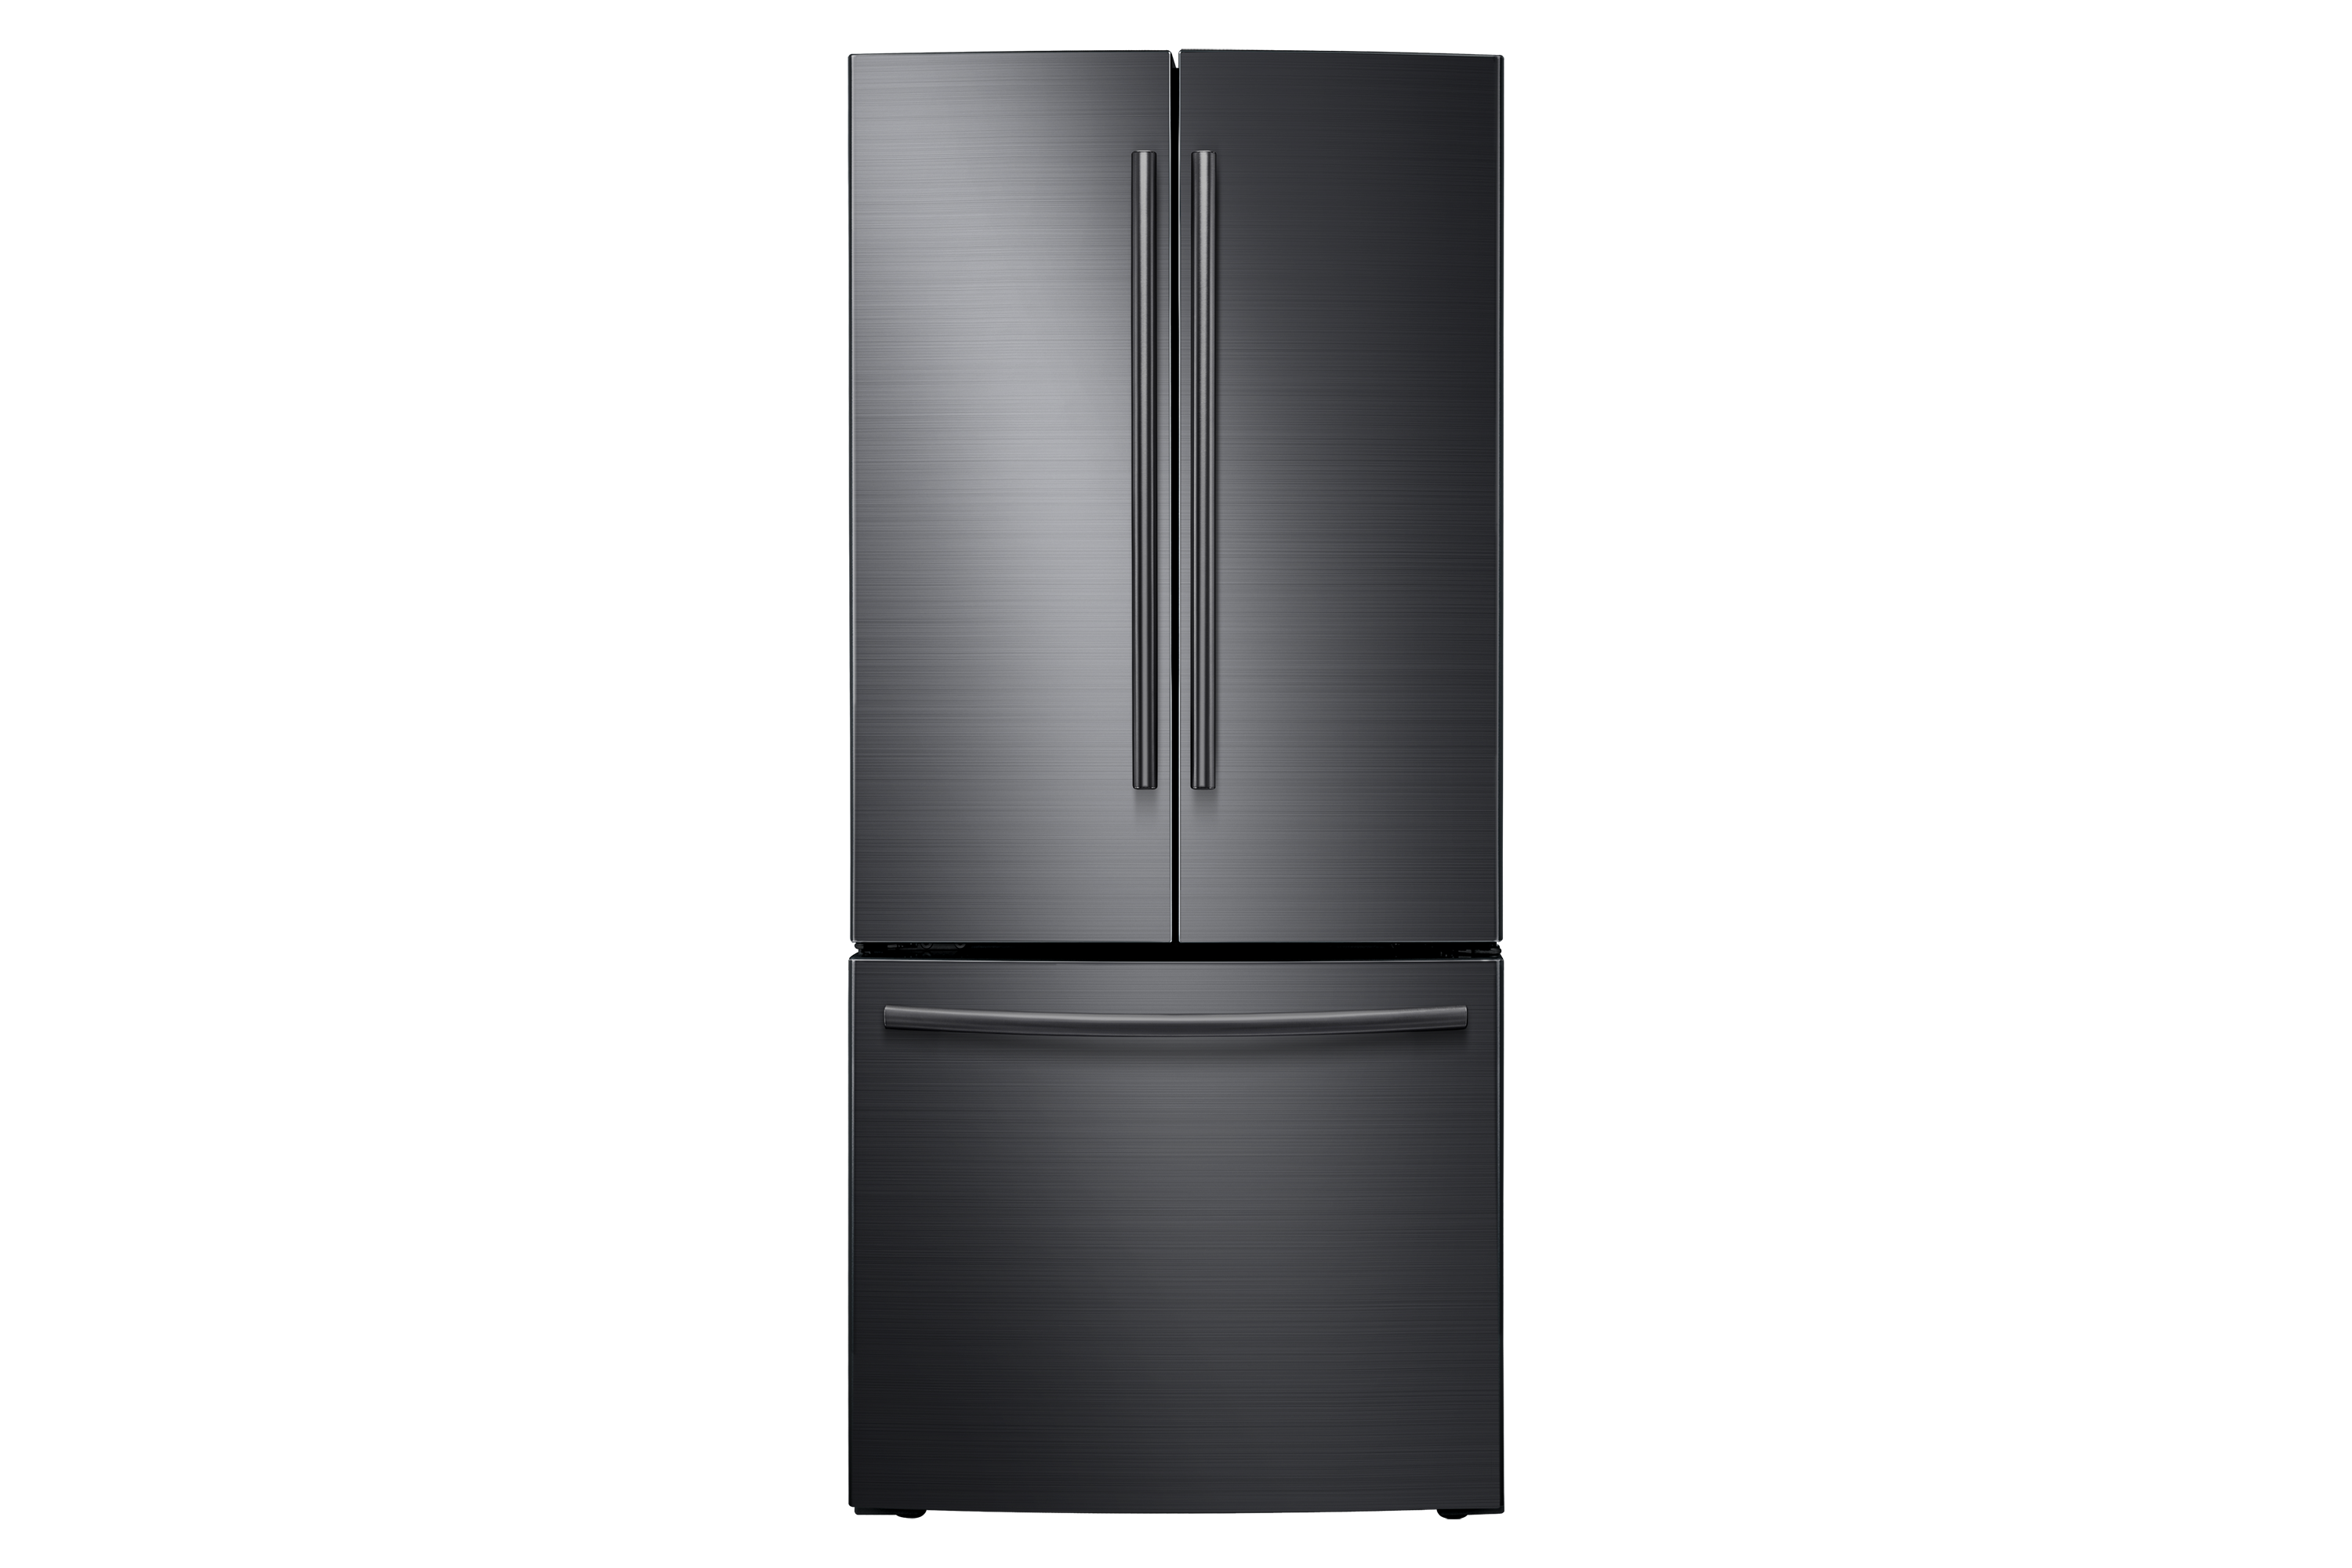 Rf220nctasg Black Stainless French Door Refrigerator With